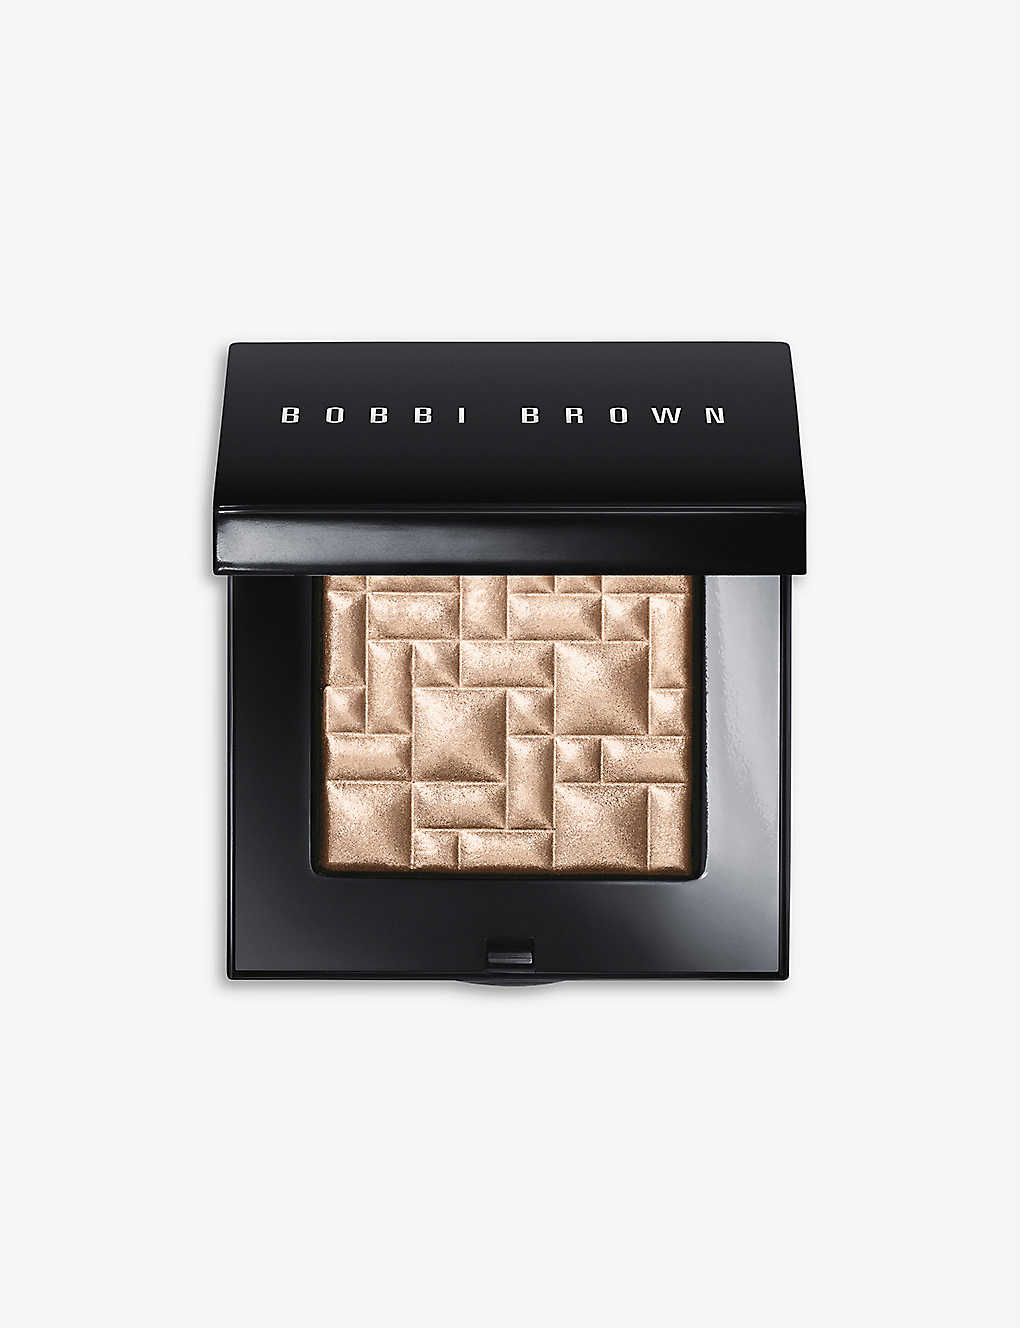 BOBBI BROWN: Highlighting Powder